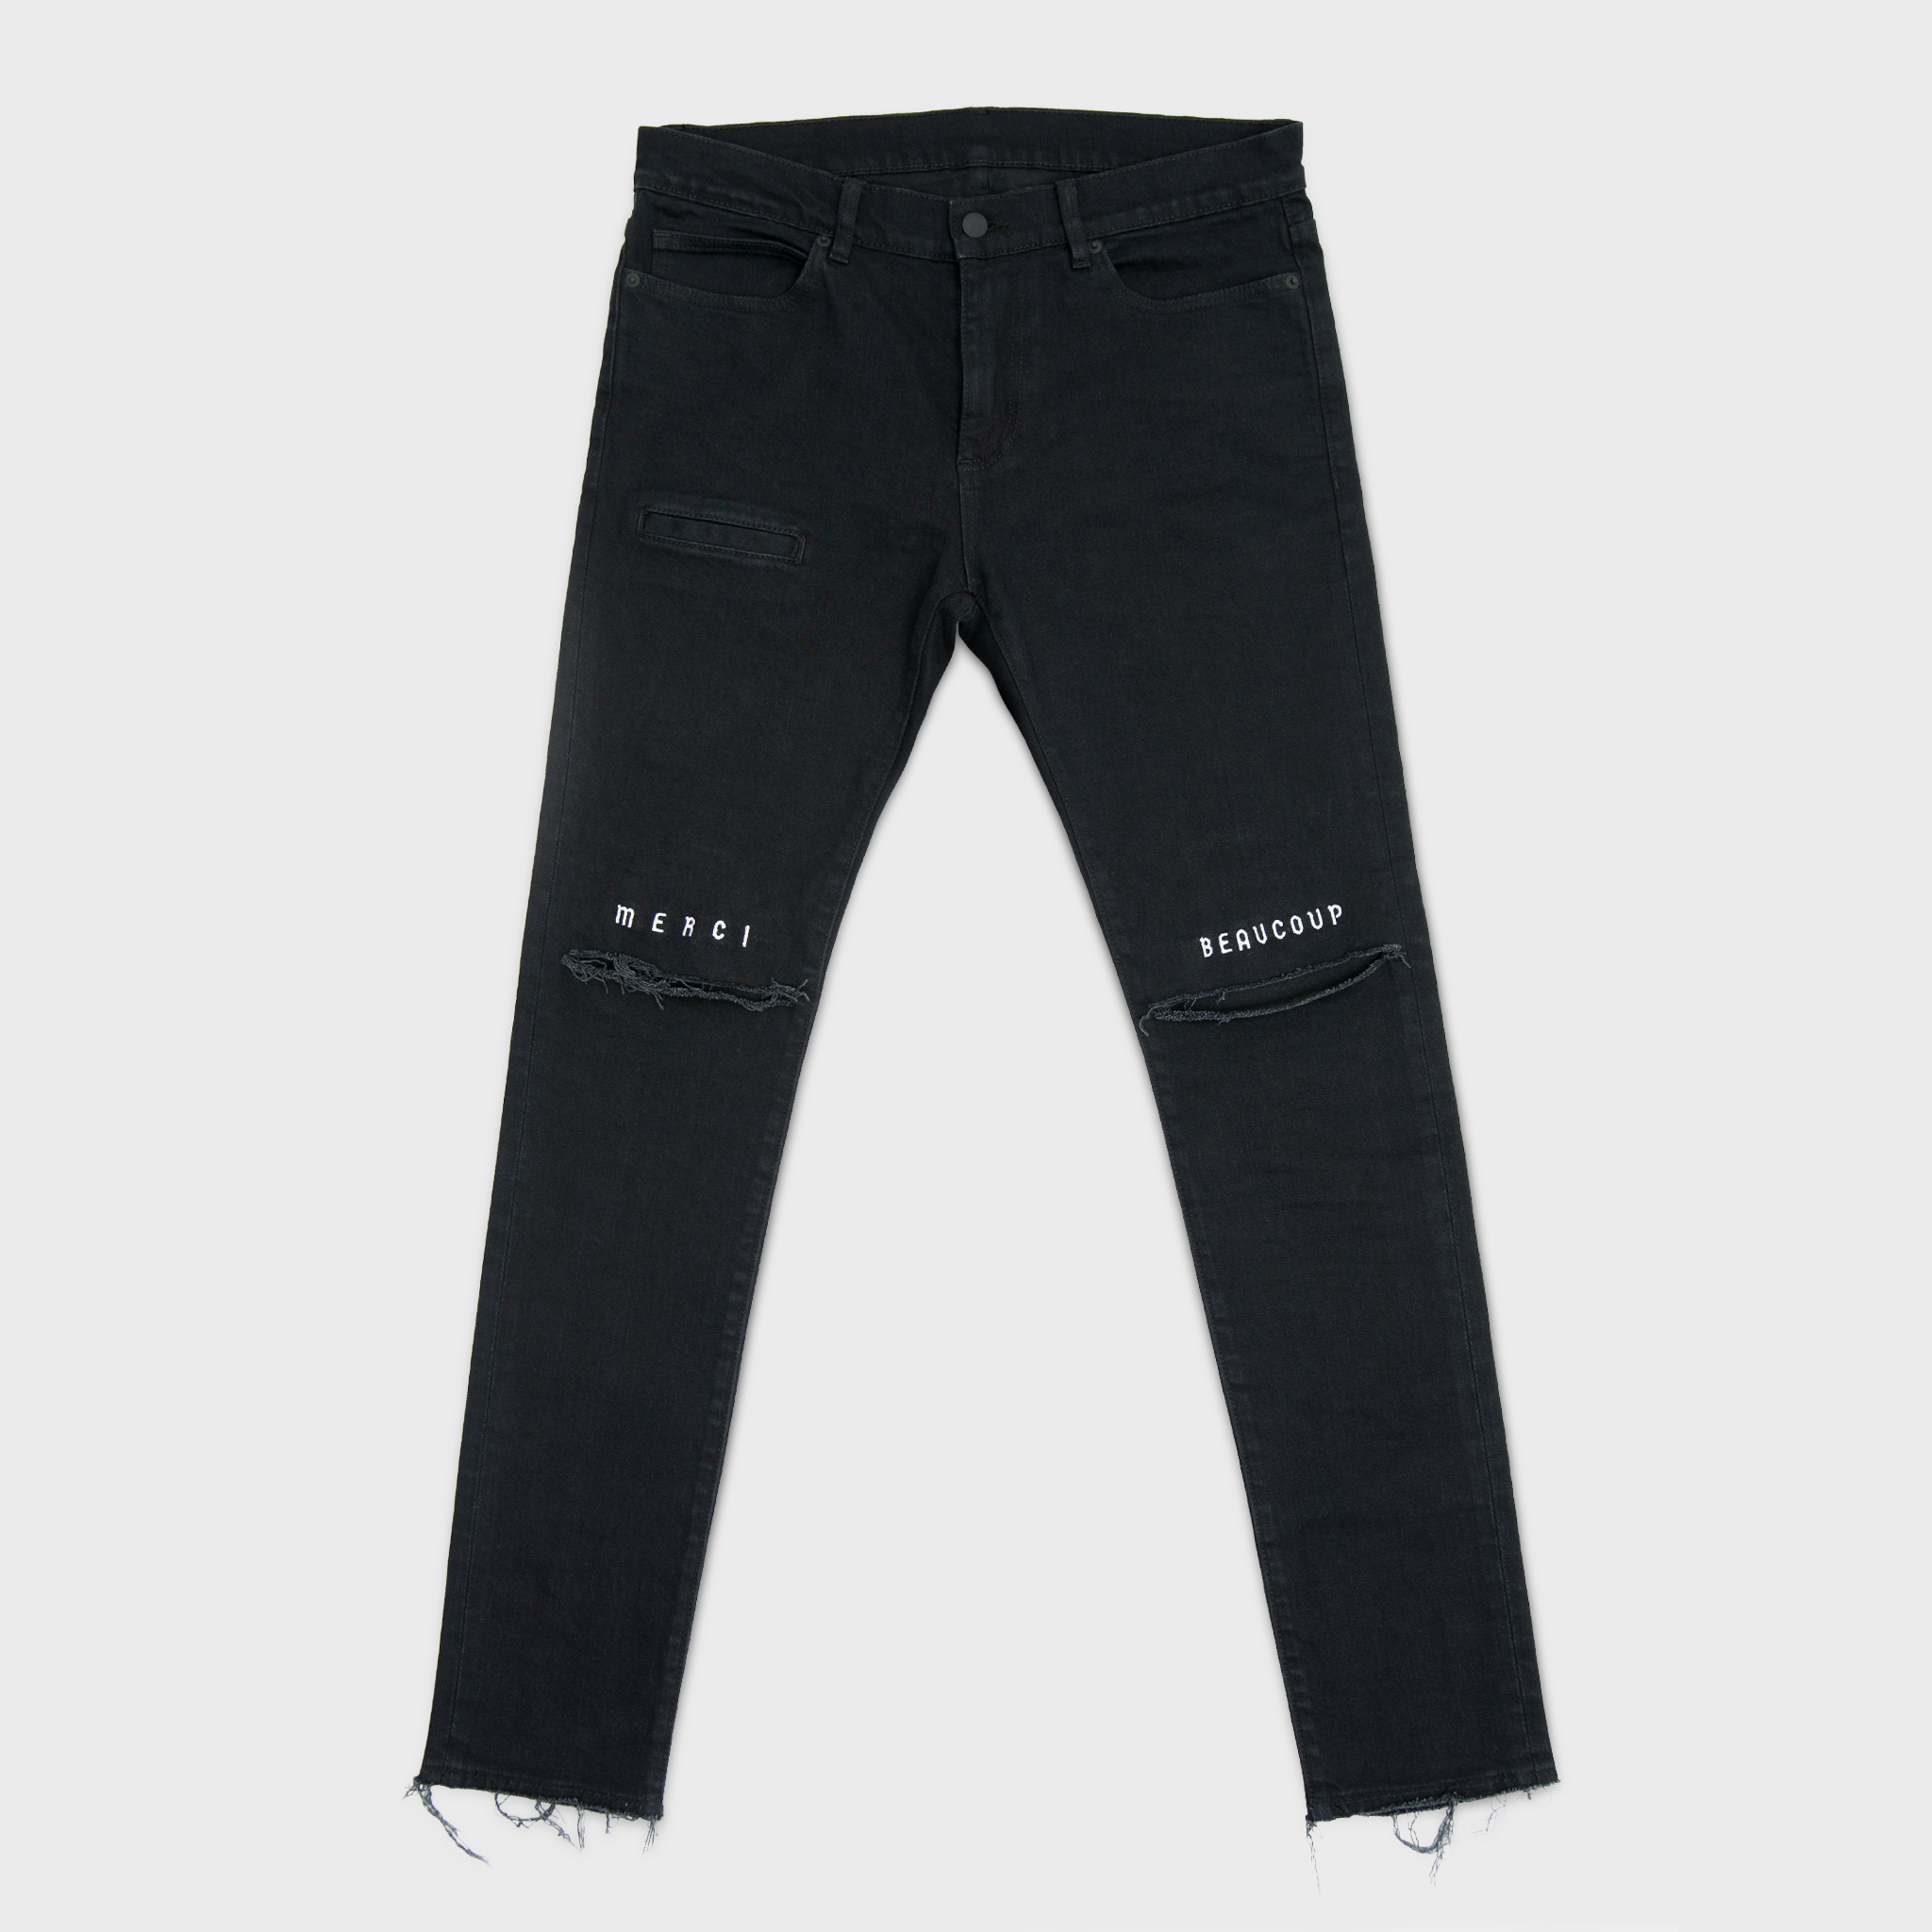 DENIM - Denim trousers Merci Discount Cheap Online Comfortable Sale Online ZOz3G